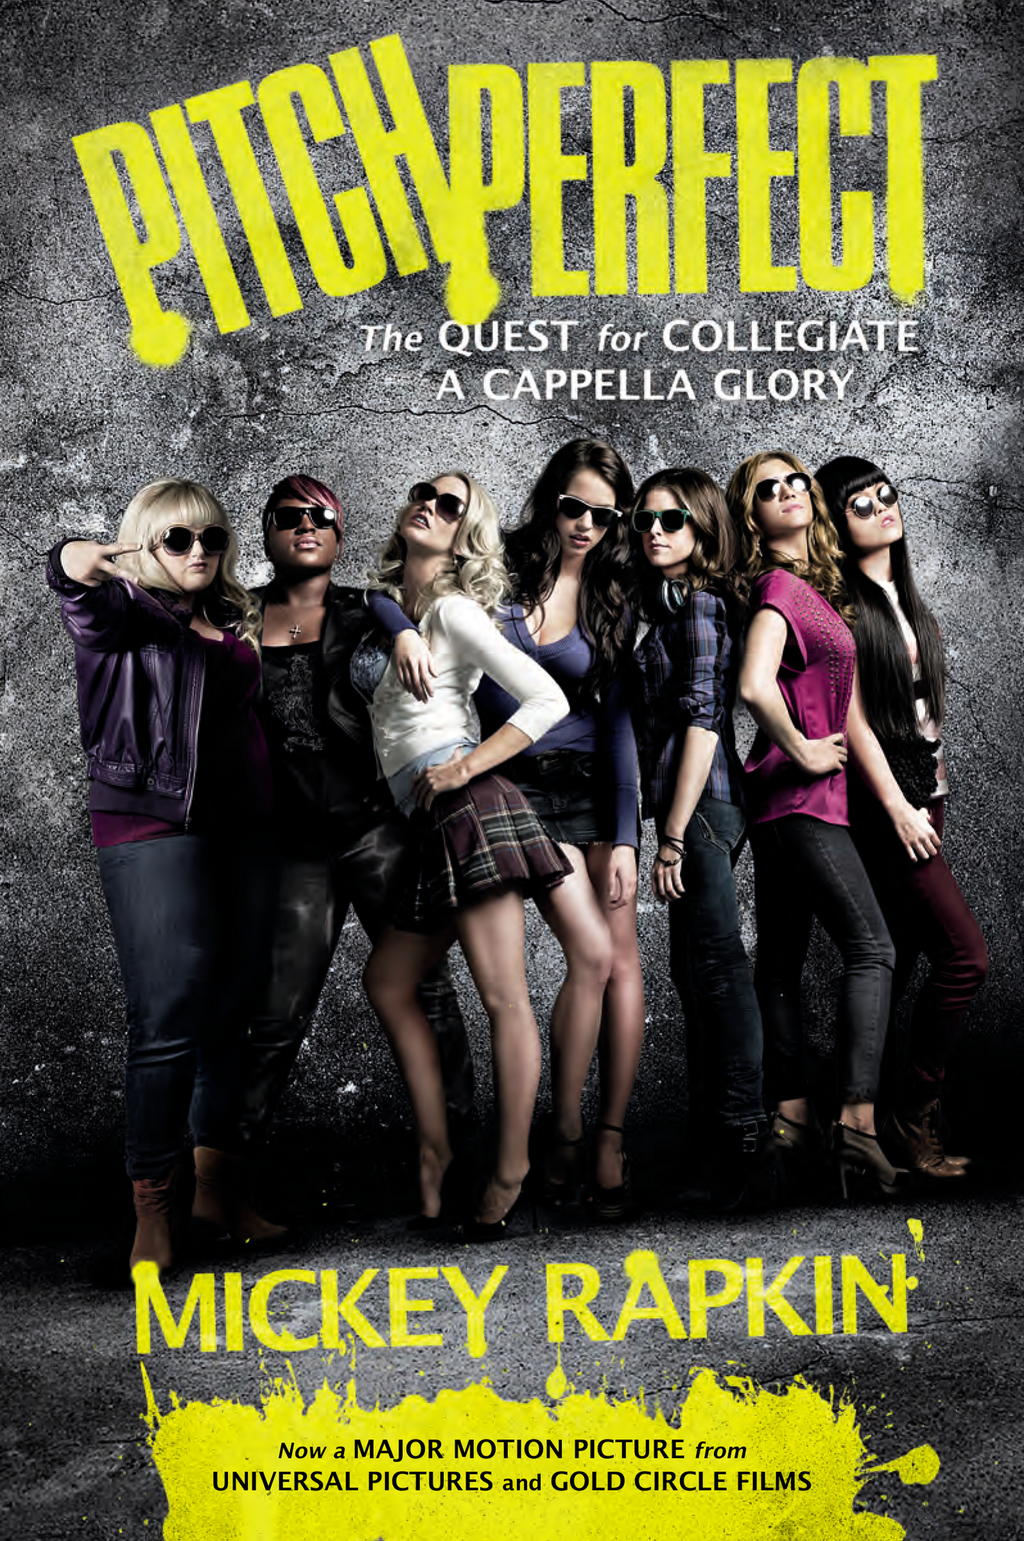 Pitch Perfect (movie tie-in) The Quest for Collegiate A Cappella Glory